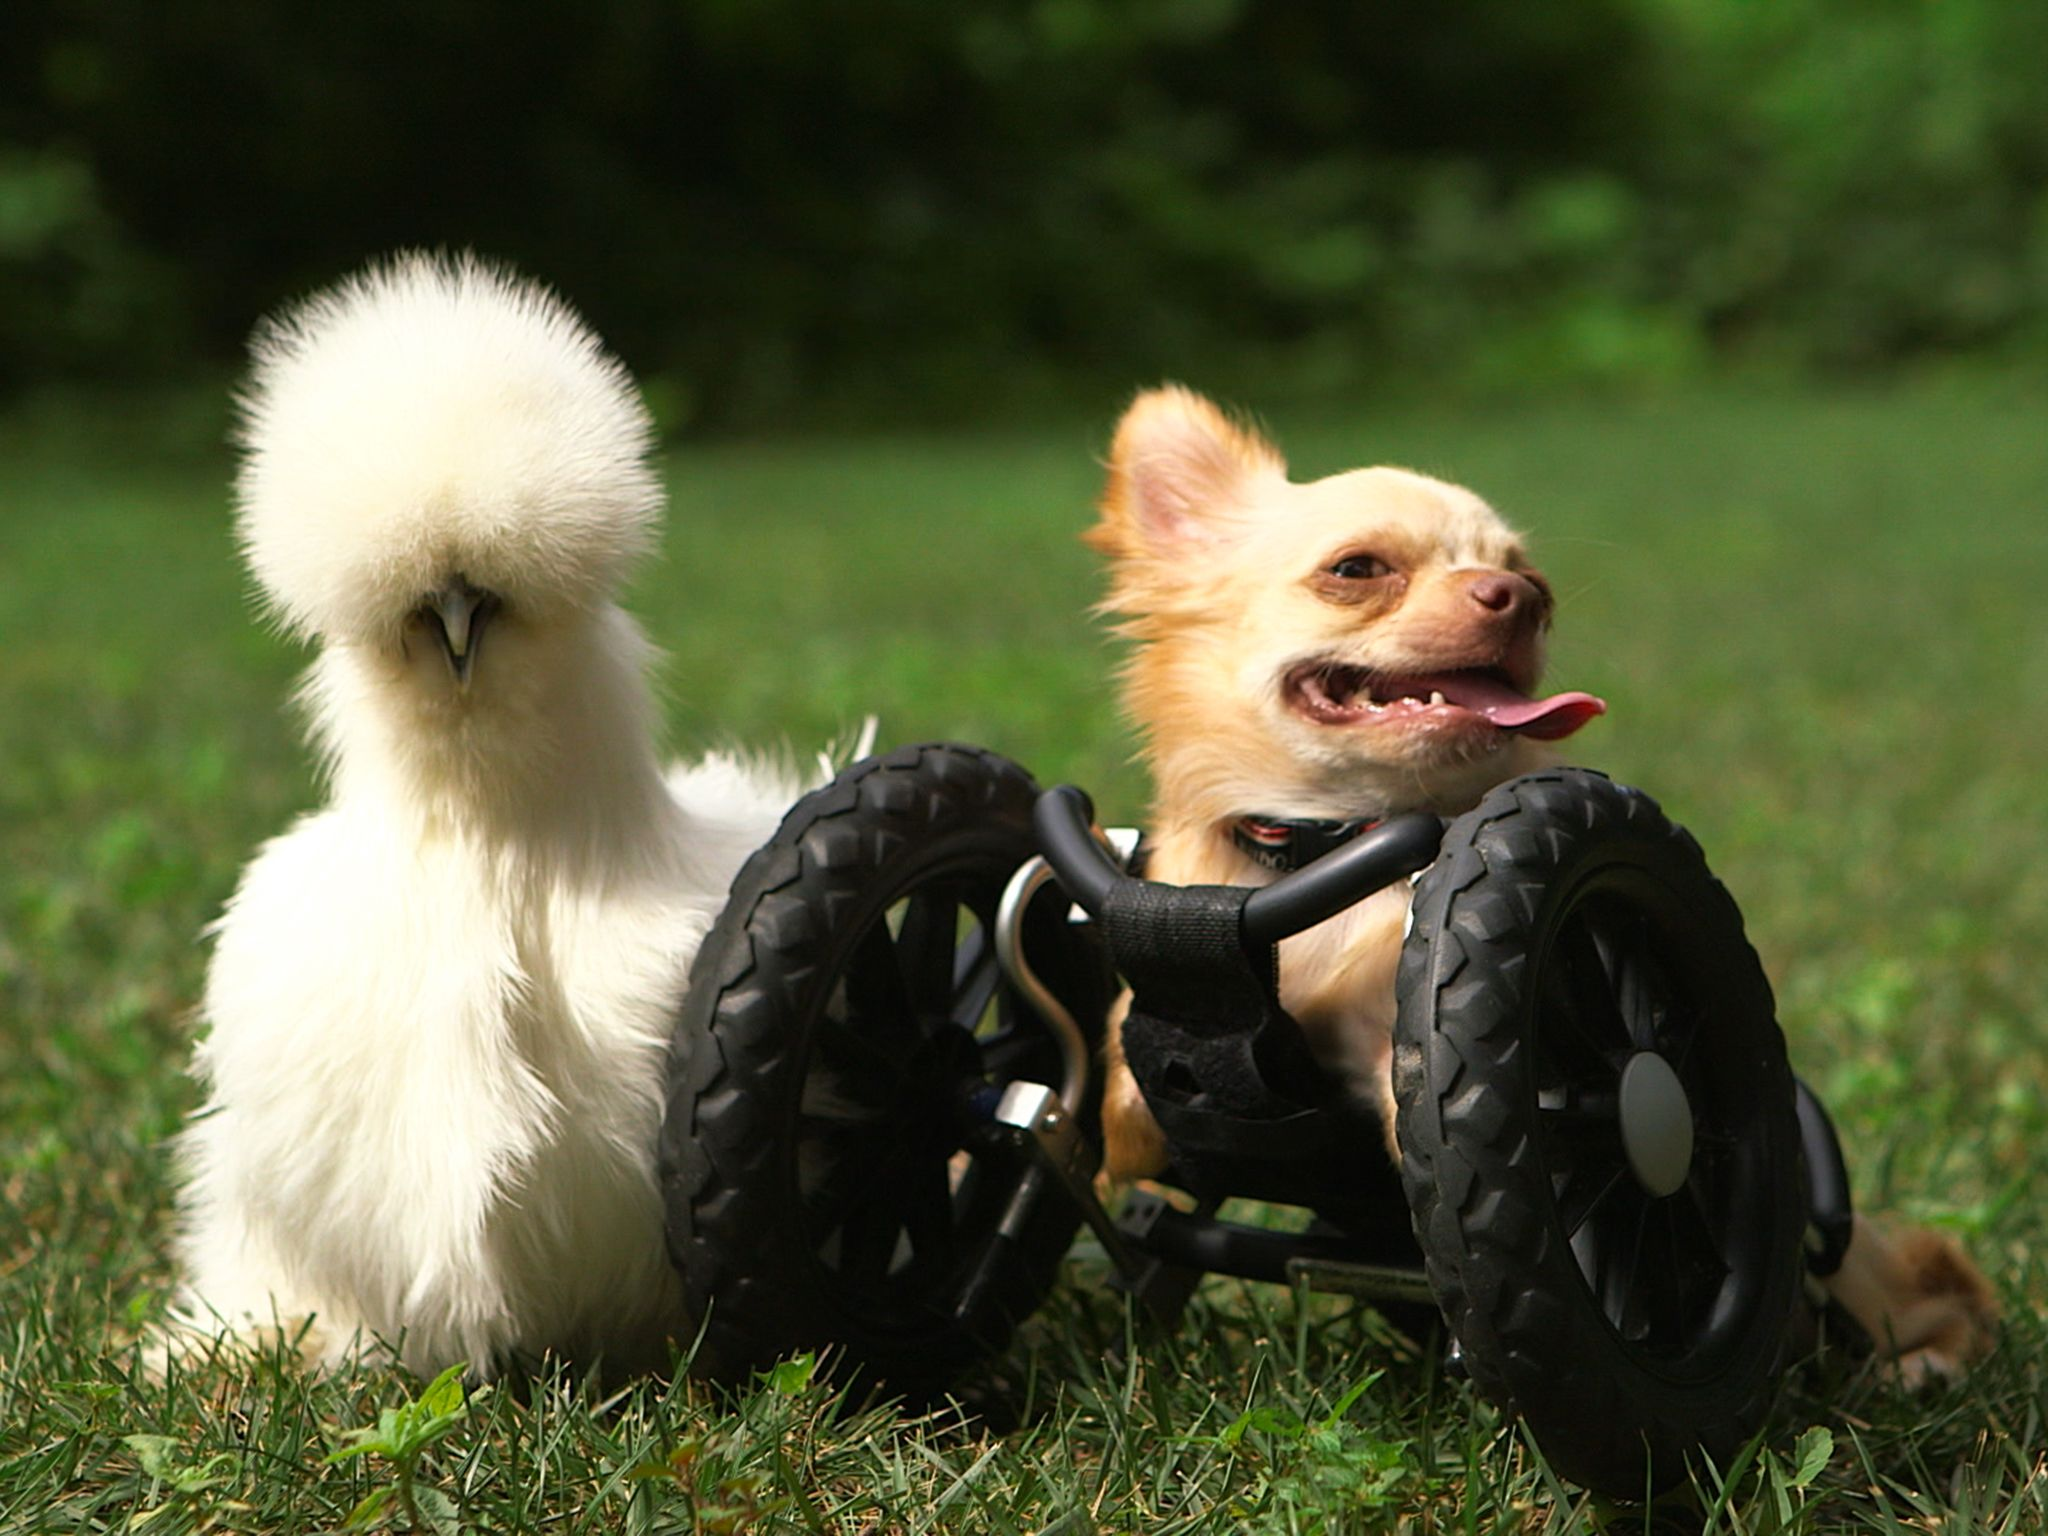 Two-legged chihuahua Roo is right next to his best buddy Penny, a silkie chicken. Both of these t... [Photo of the day - april 2015]